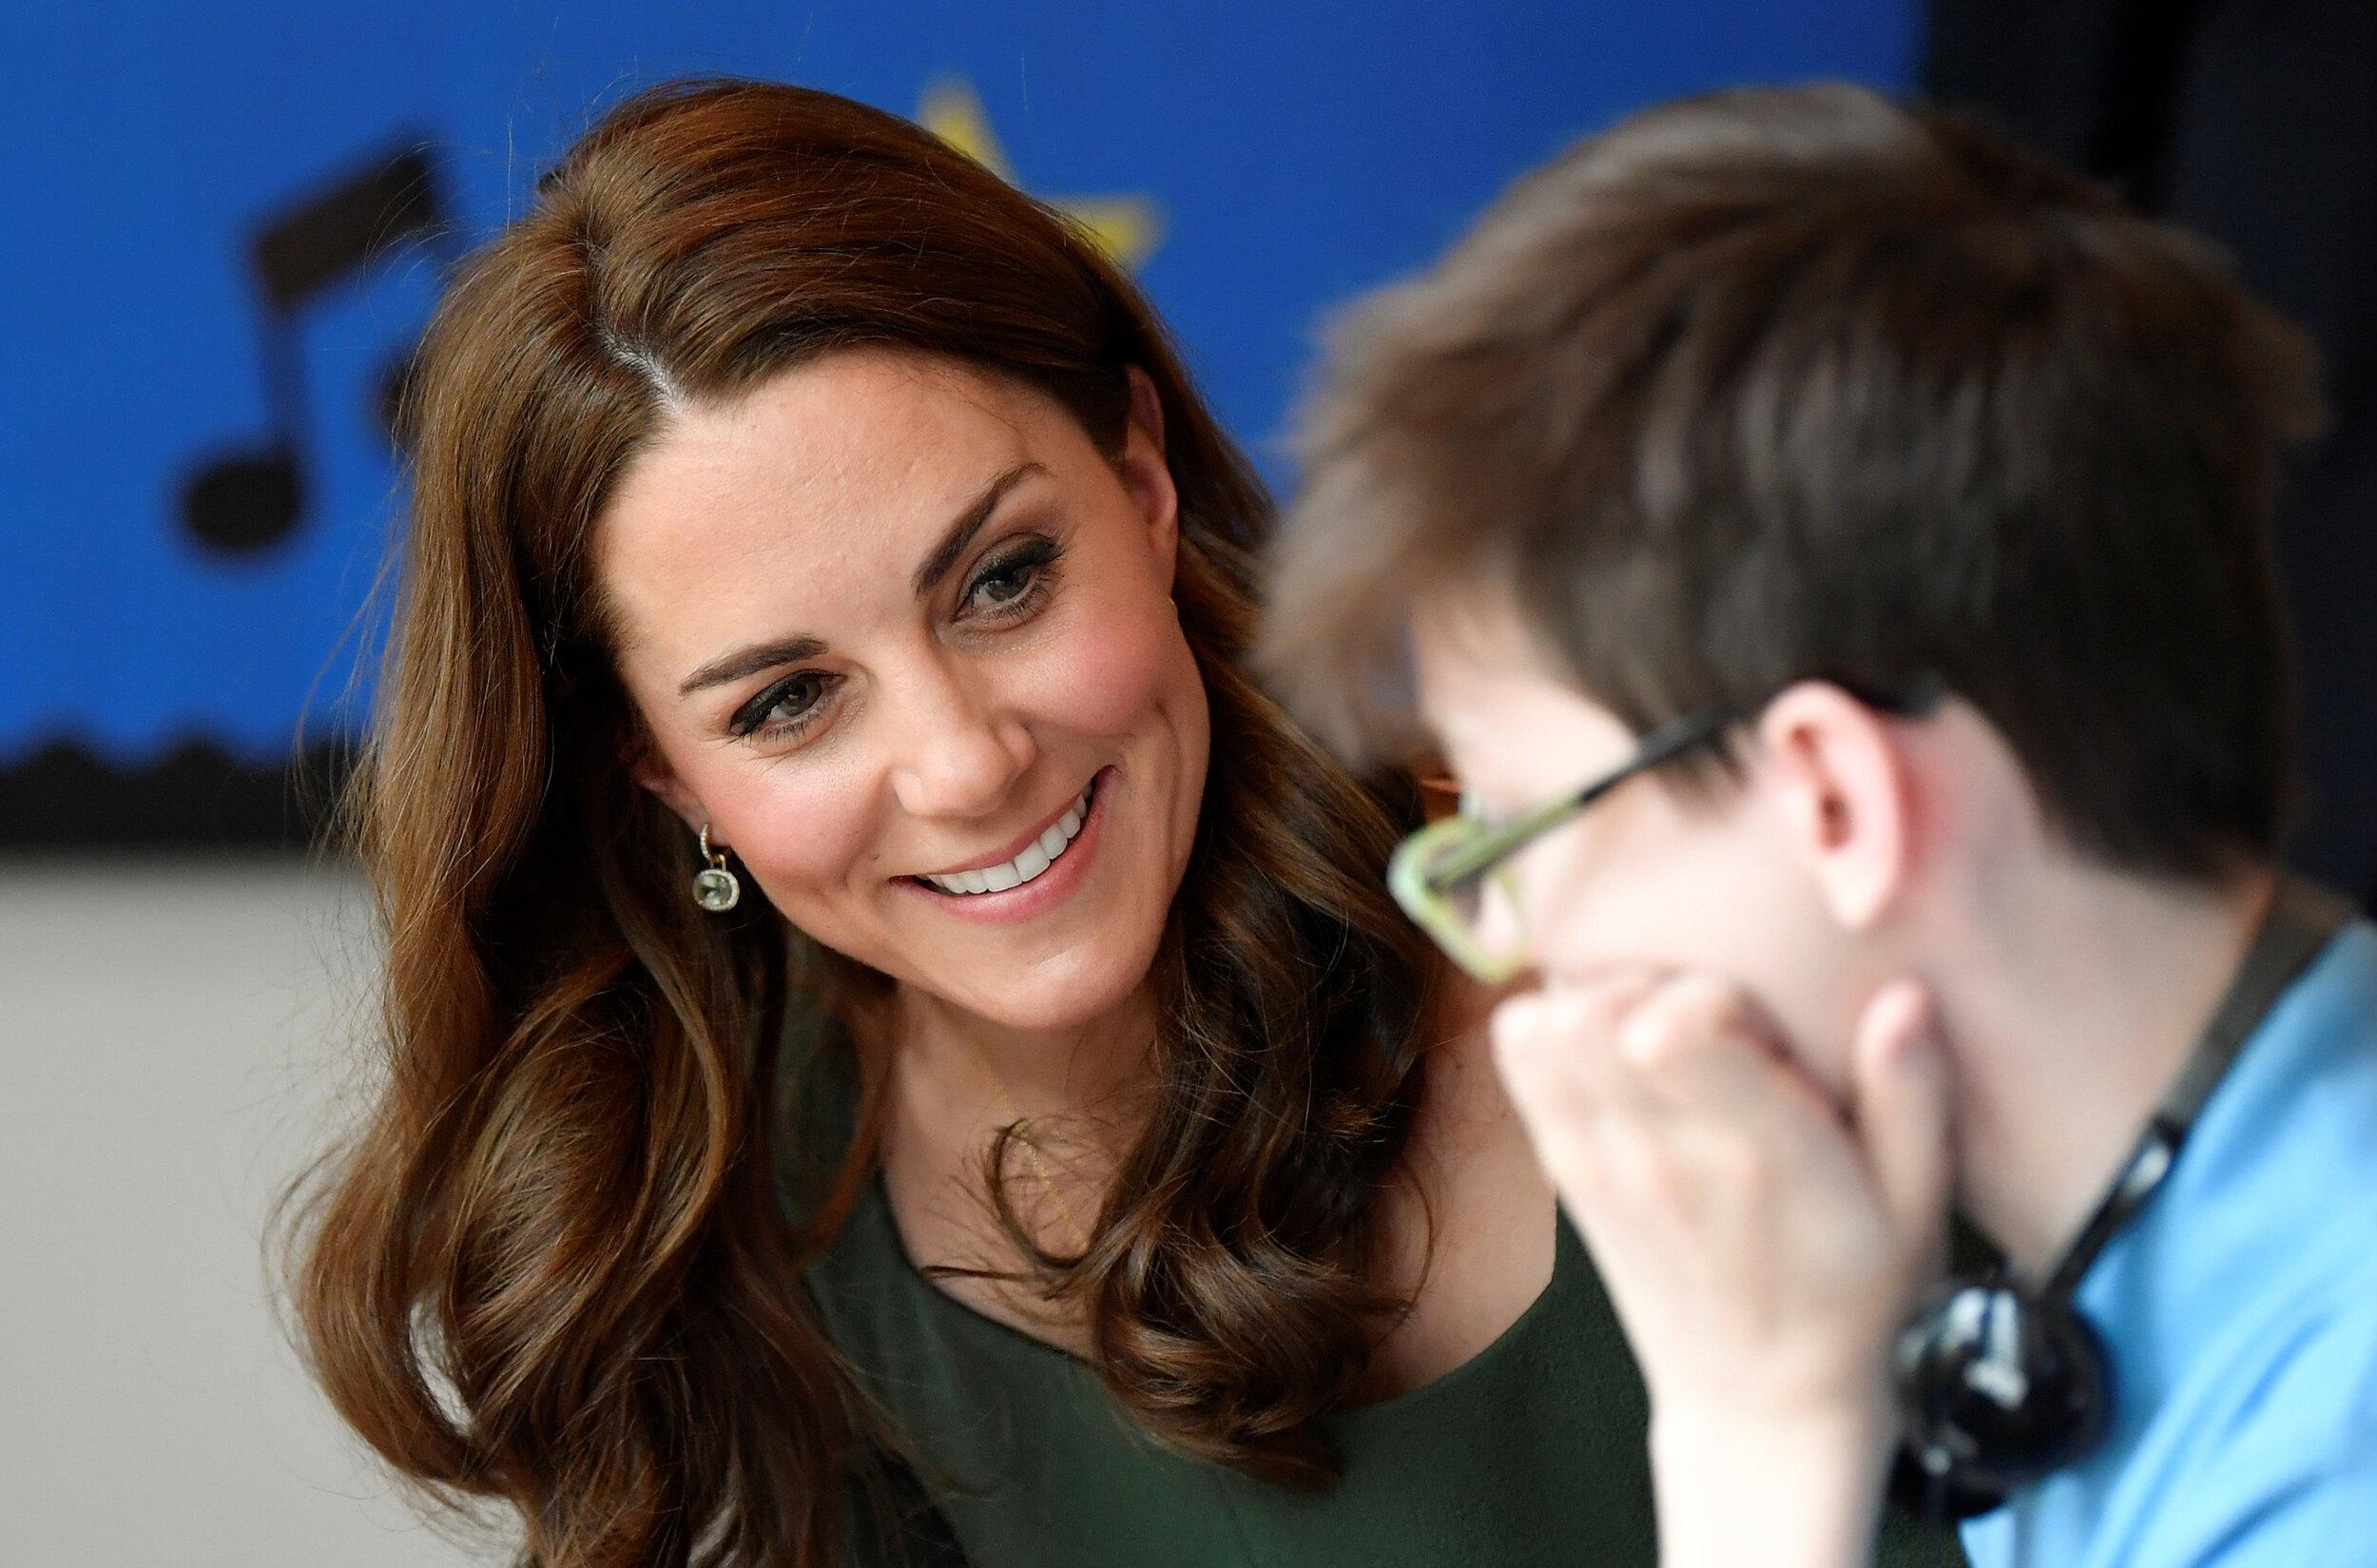 LONDON, ENGLAND - MAY 01:  Catherine, Duchess of Cambridge officially opens the new Centre of Excellence at the Anna Freud Centre on May 1, 2019 in London, England. The Duchess of Cambridge is Patron of the Anna Freud National Centre for Children and Families. (Photo by Toby Melville - WPA Pool/Getty Images)